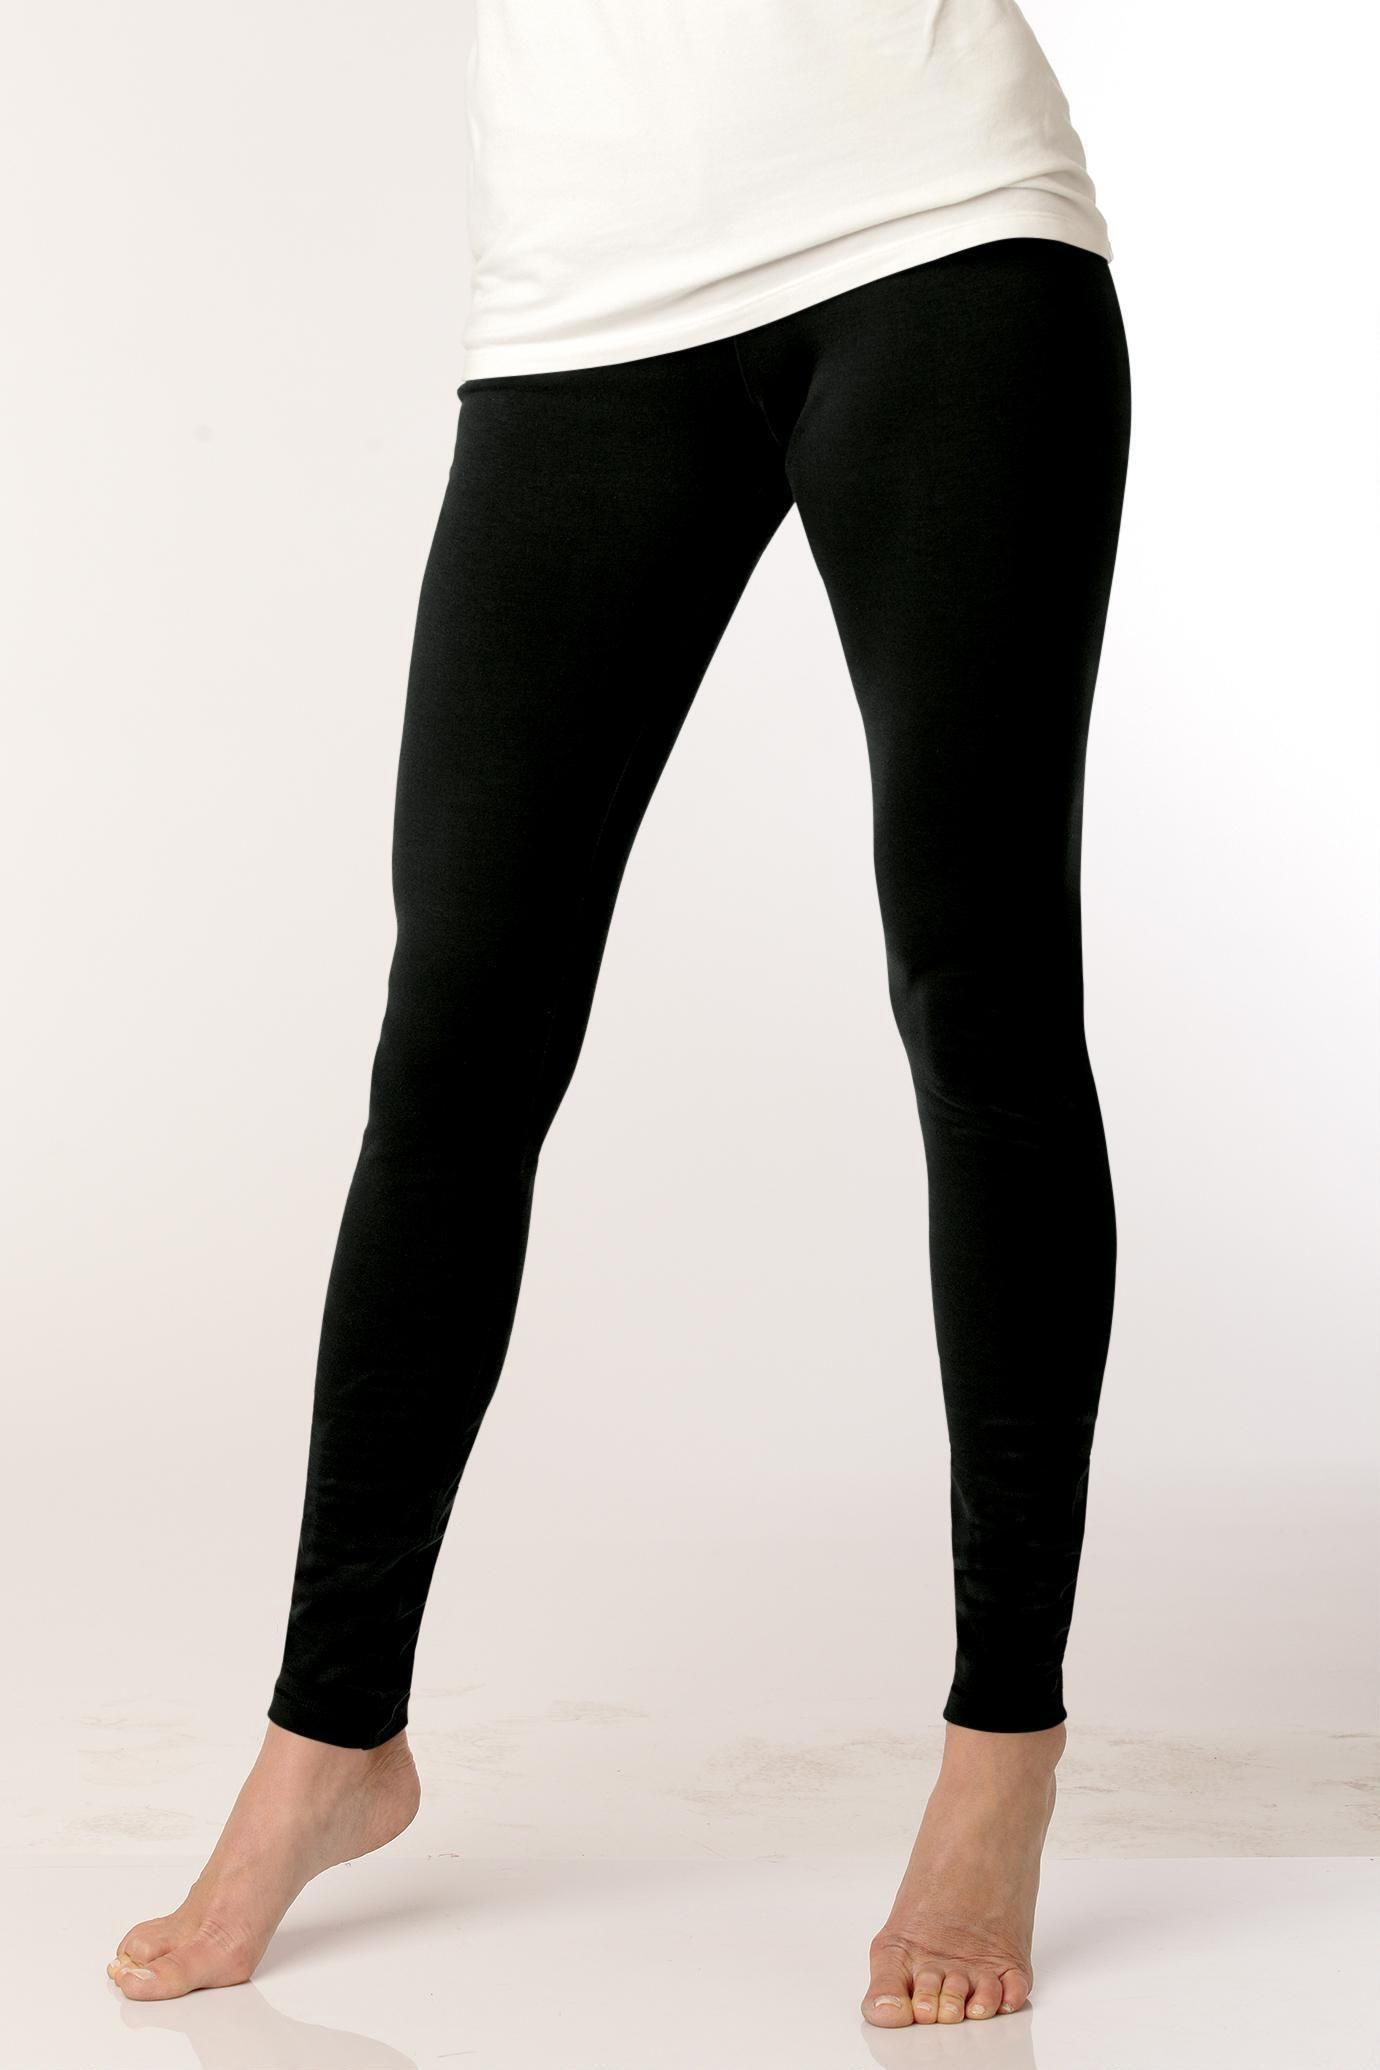 d14d5ac44469e Wide Waistband Leggings by Real Comfort®   tall atire   Knit ...